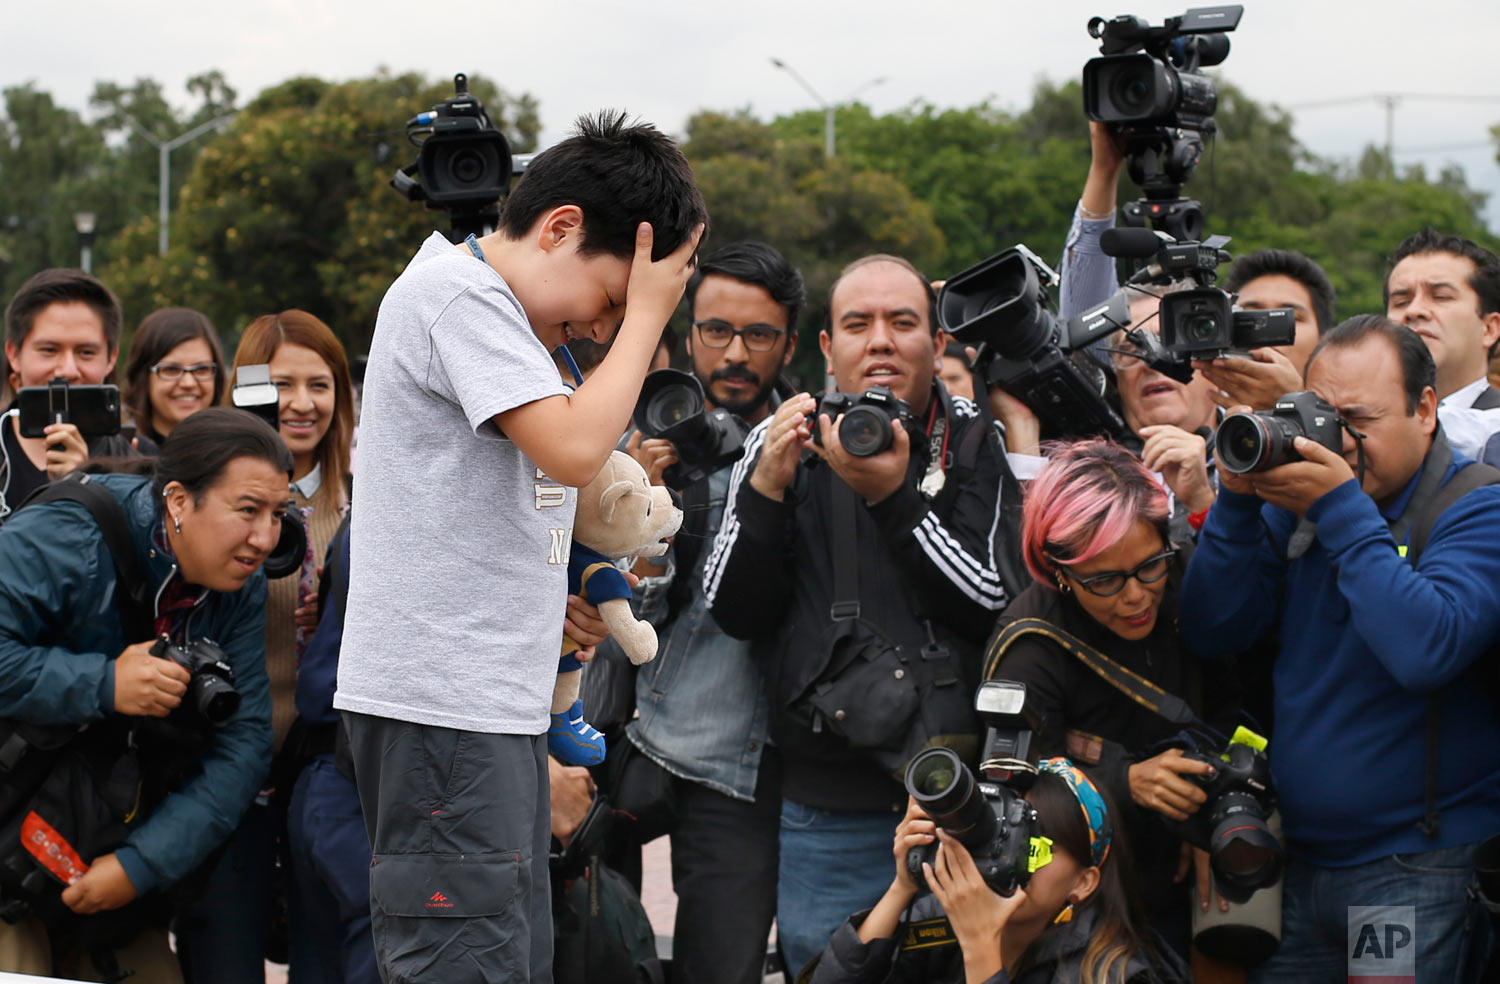 12-year-old Carlos Santamaria Diaz poses for photographers during a press event at Mexico's National Autonomous University in Mexico City, Friday, Aug. 3, 2018. The university, better known by its Spanish initials as the UNAM, said Thursday that Carlos Santamaria Diaz is the youngest such student in the university's roughly century-long history.(AP Photo / Marco Ugarte)